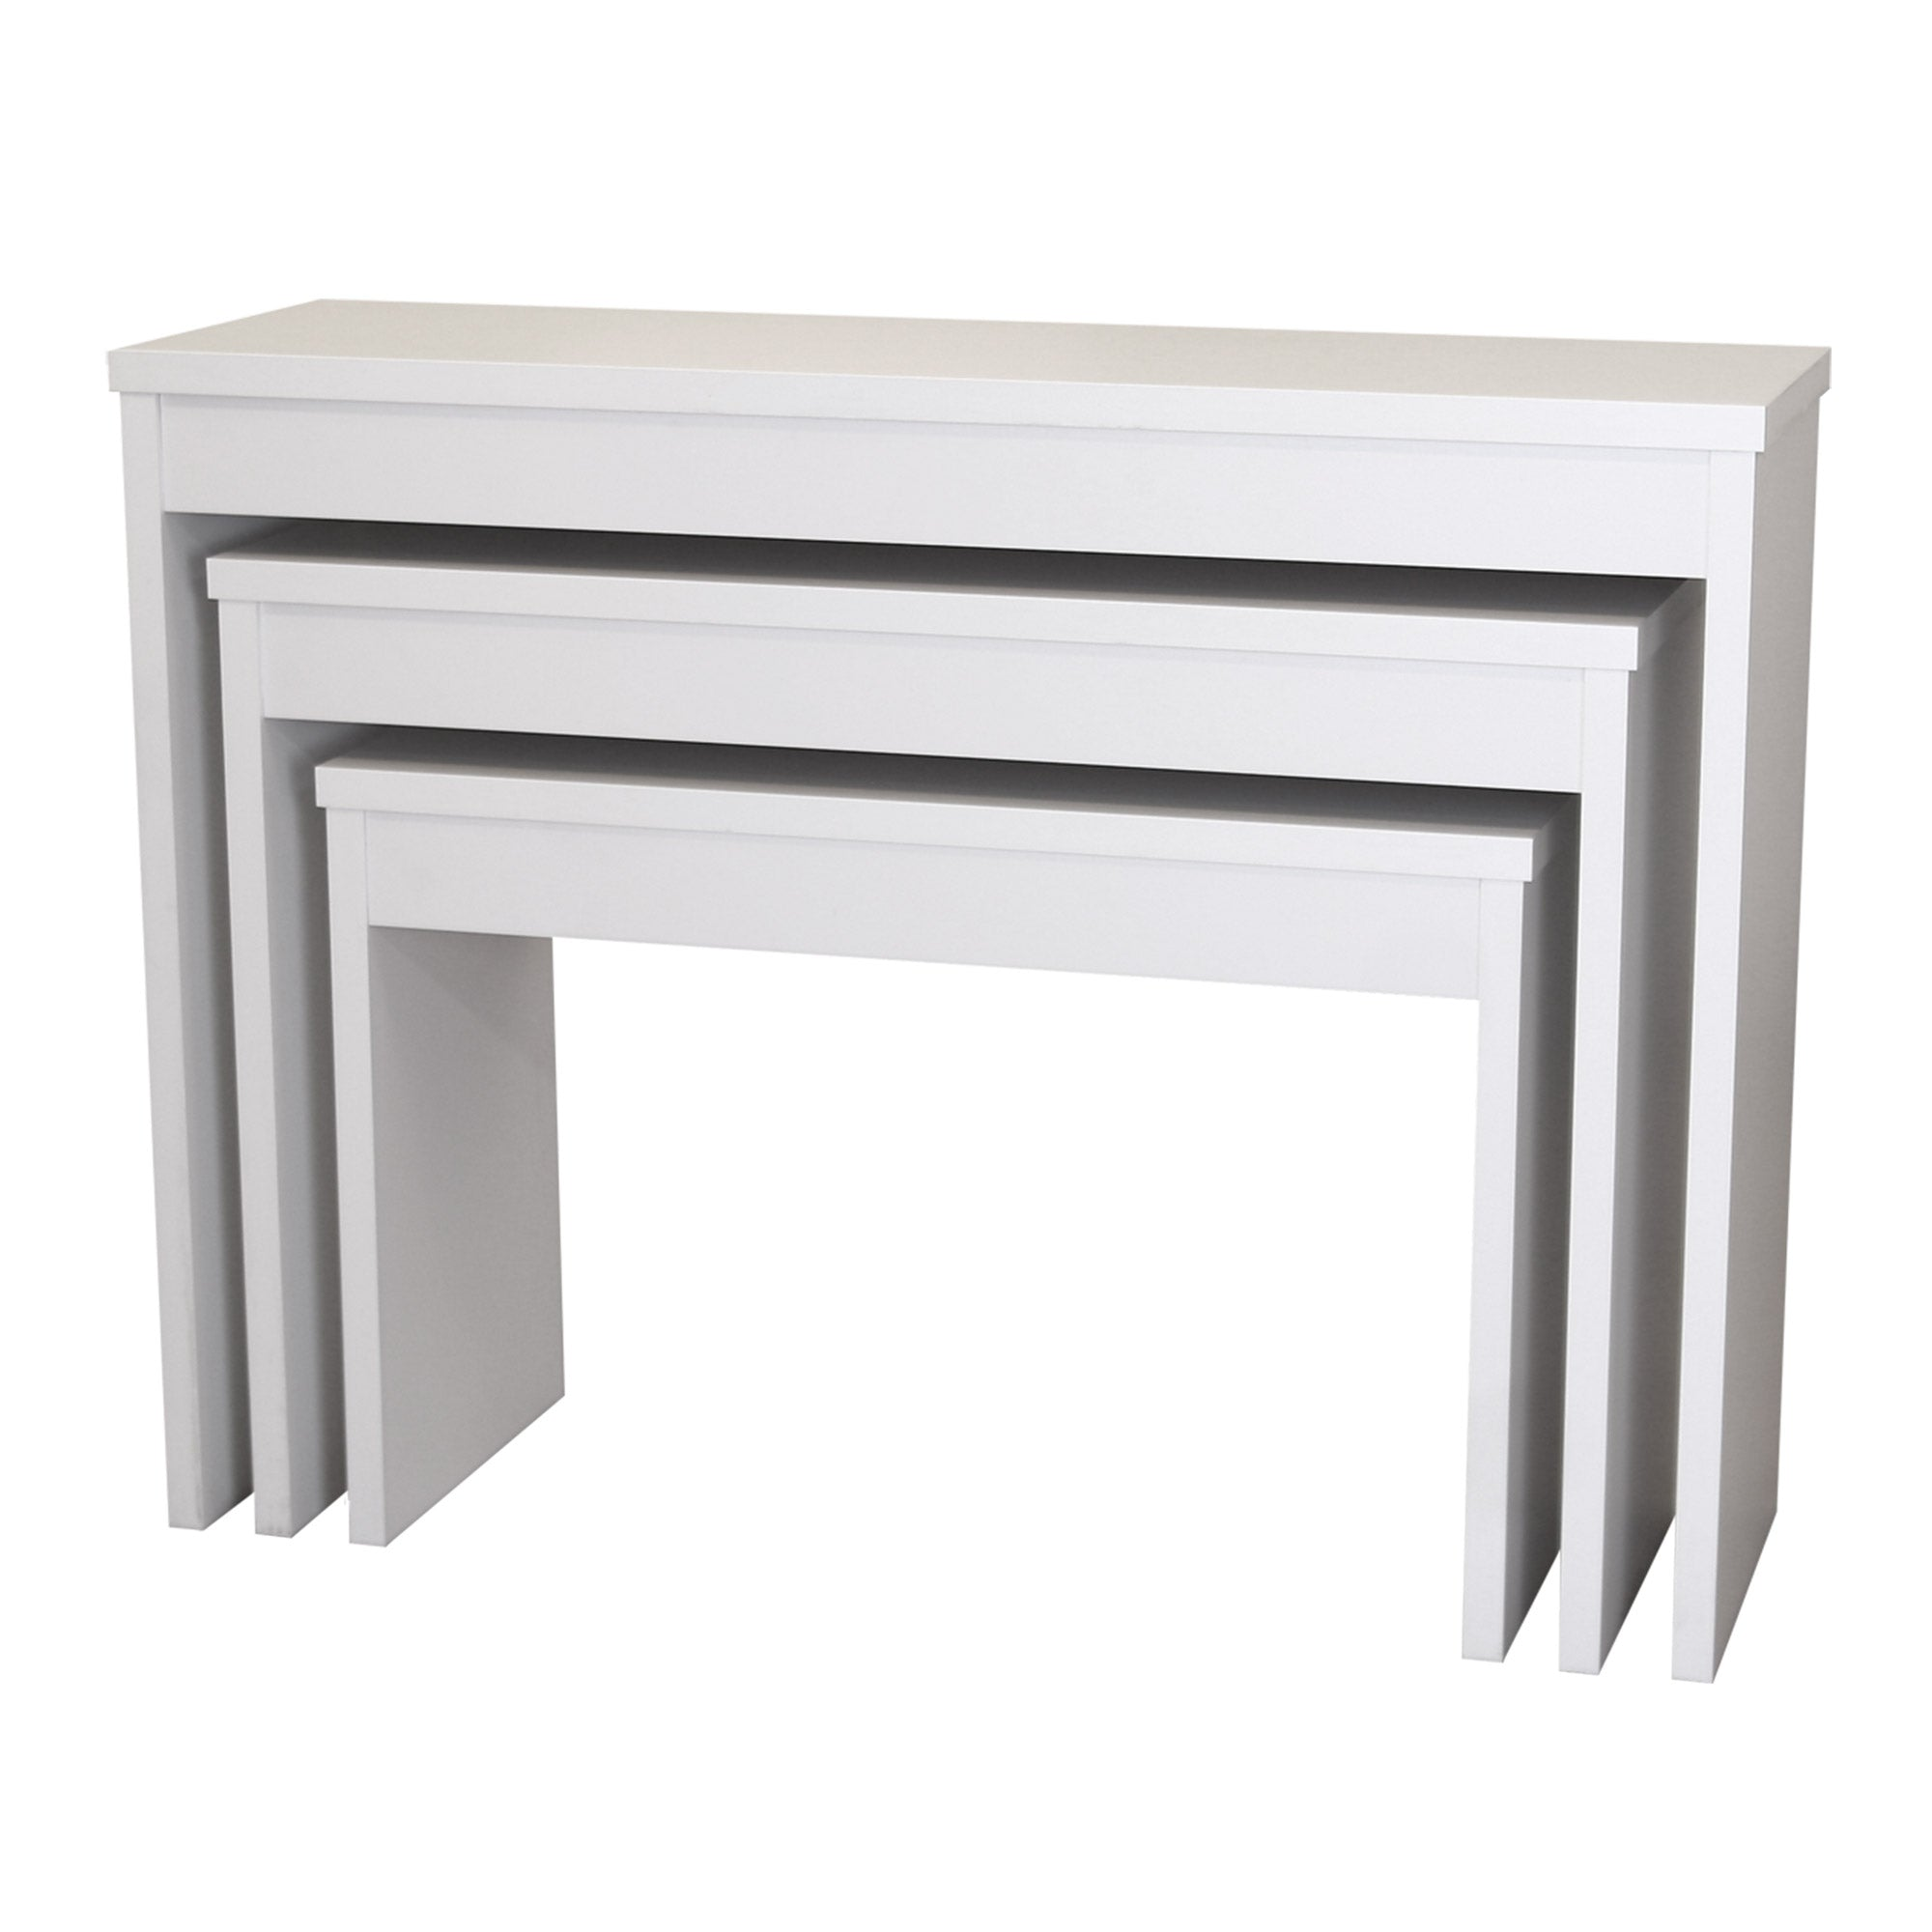 Zada Nesting Tables - Collins